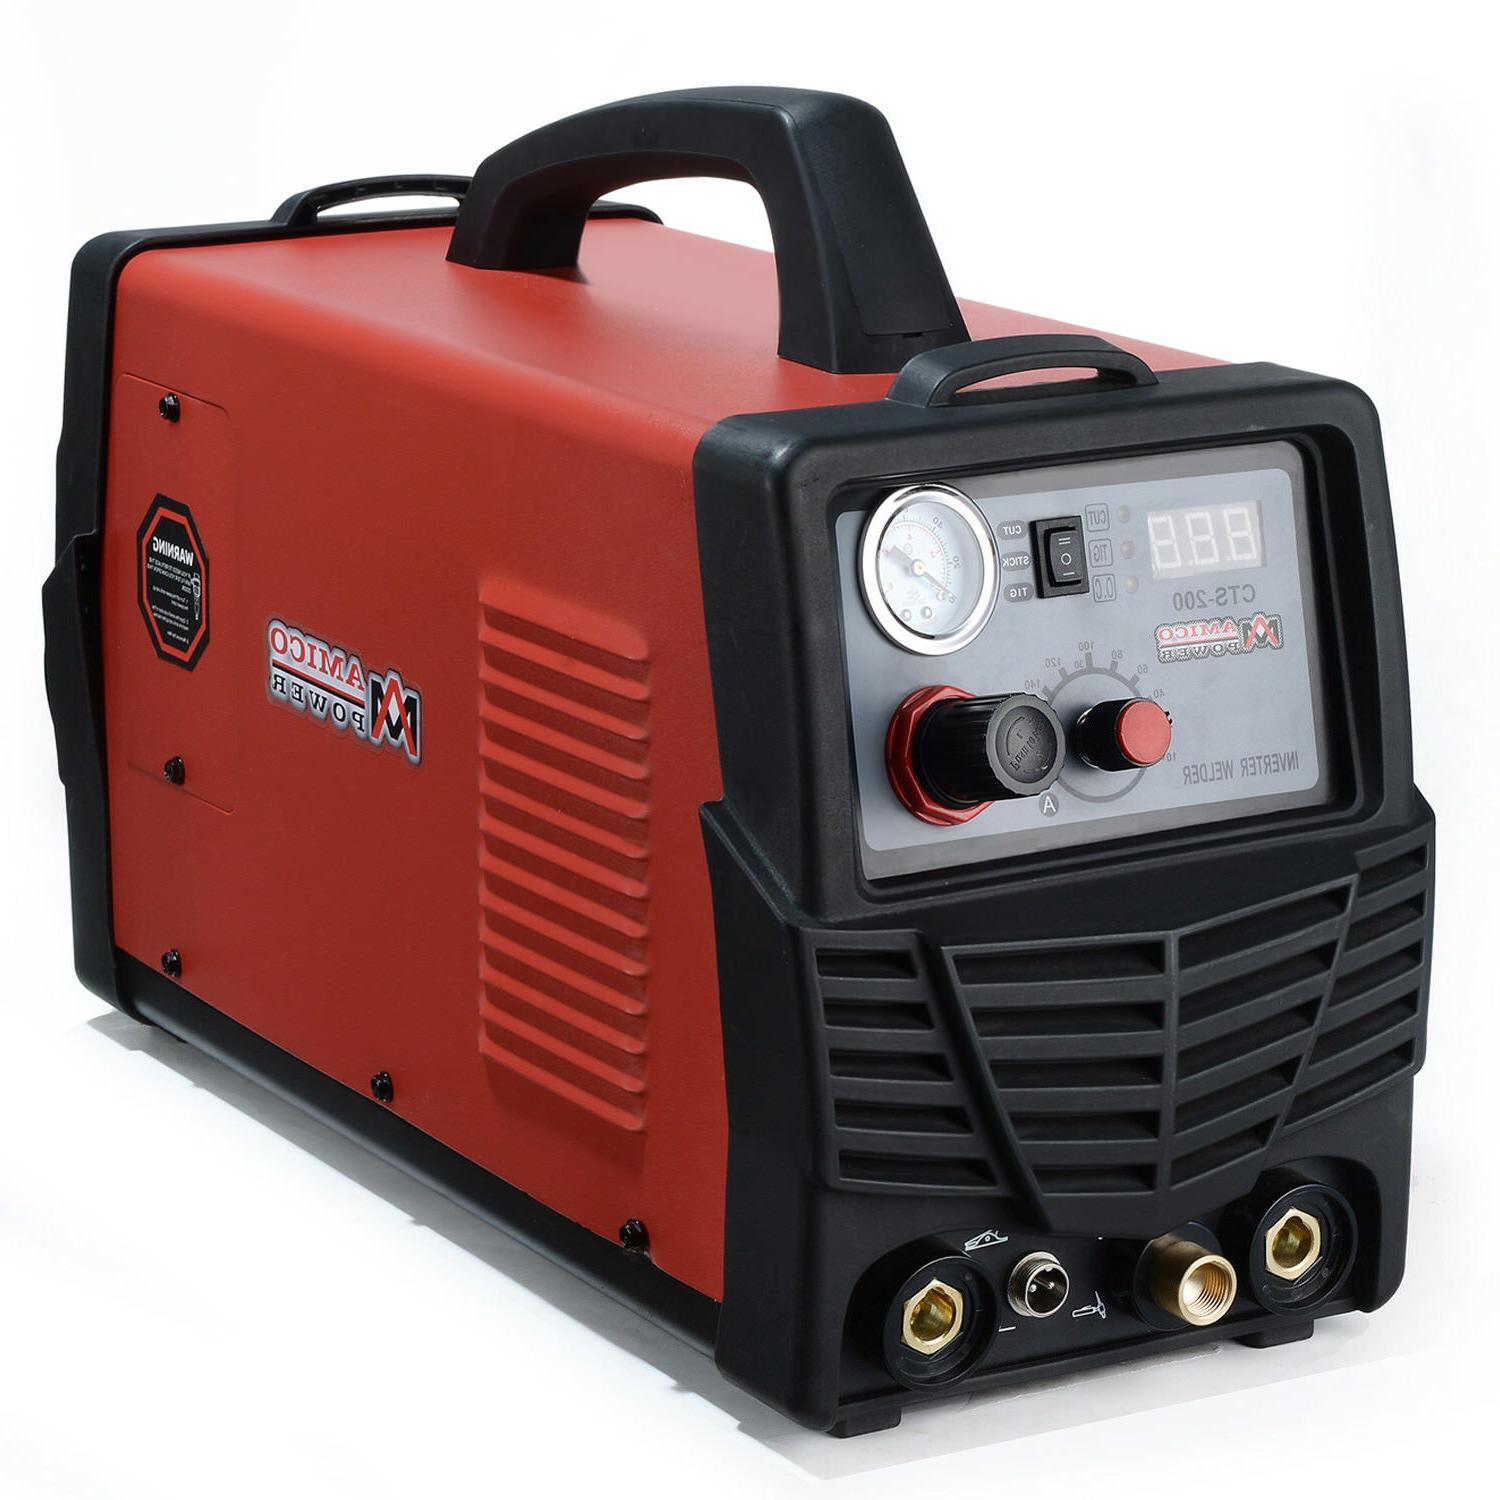 Amico Plasma 200A Welder 3-in-1